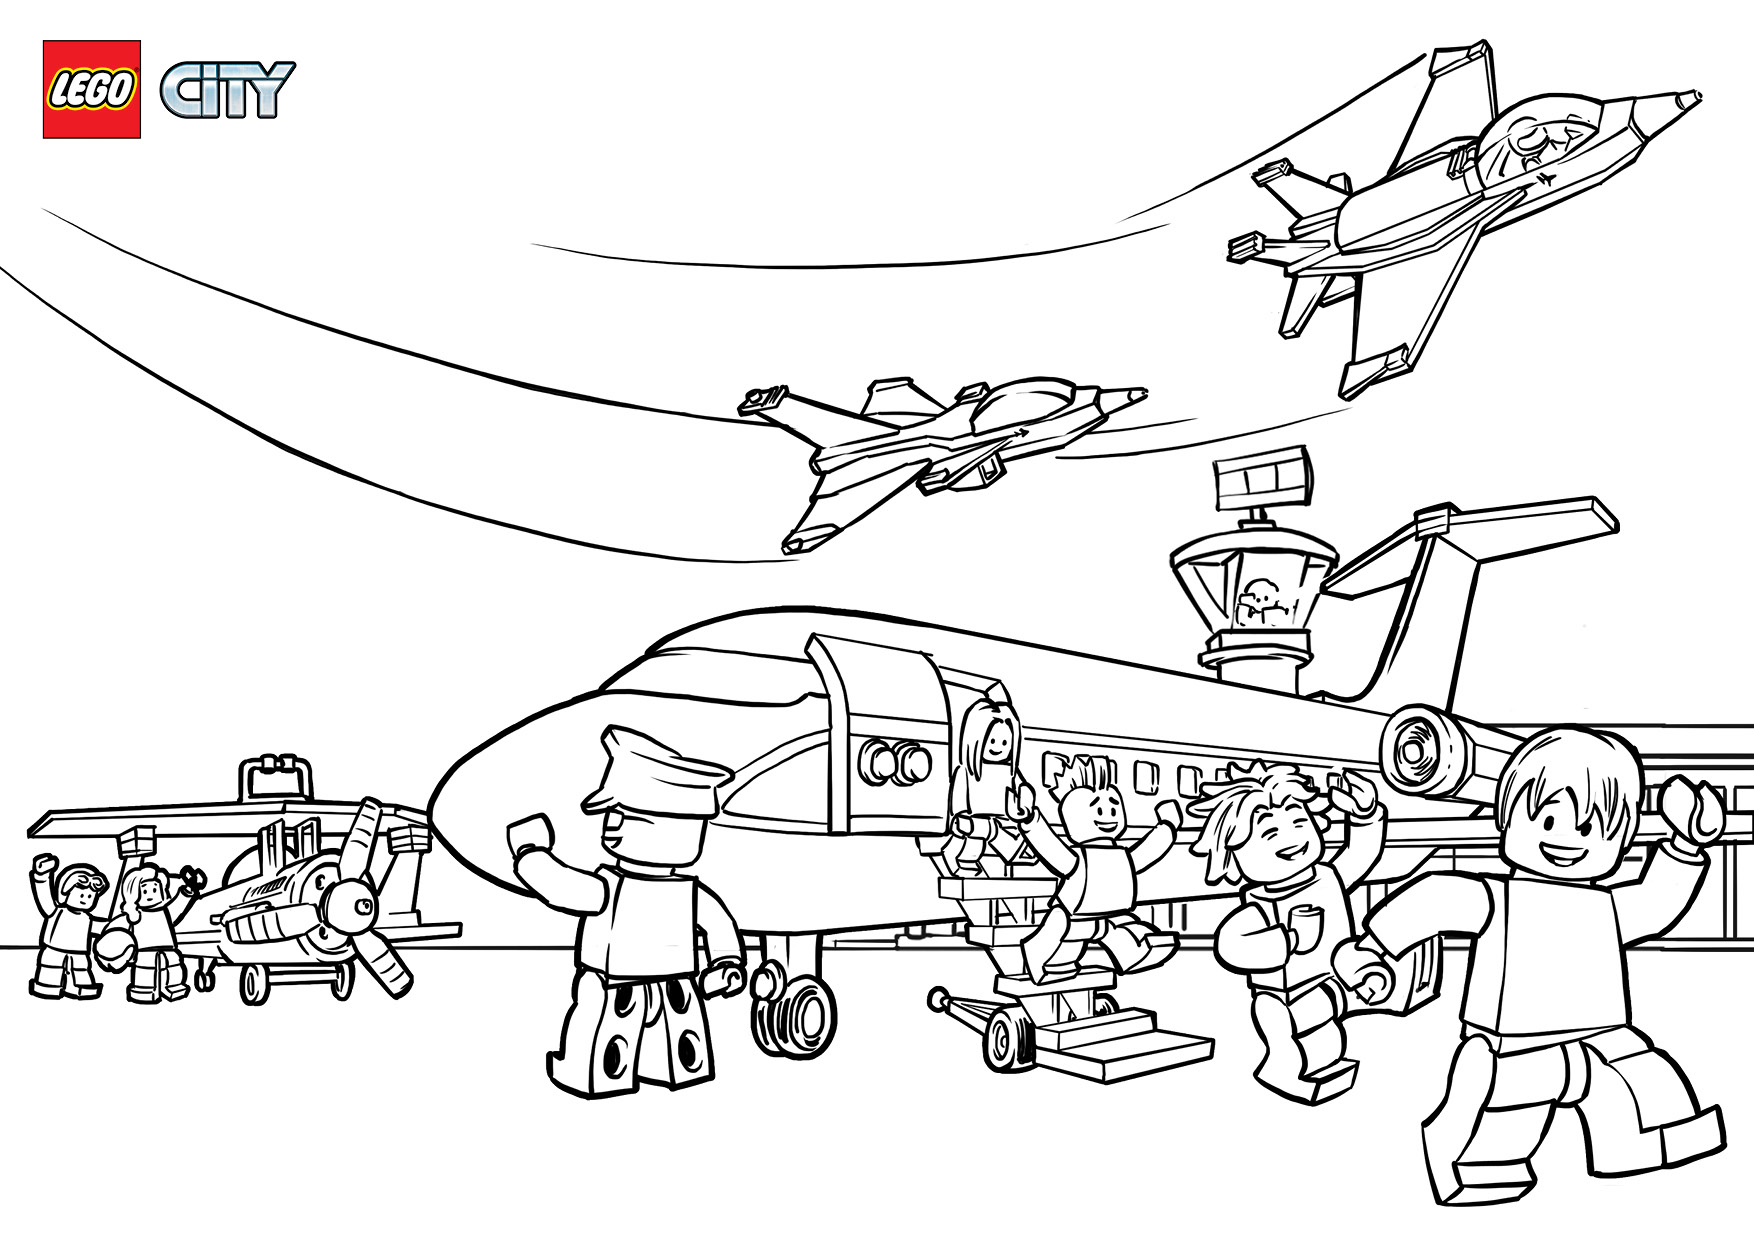 The Best Free Airport Coloring Page Images Download From